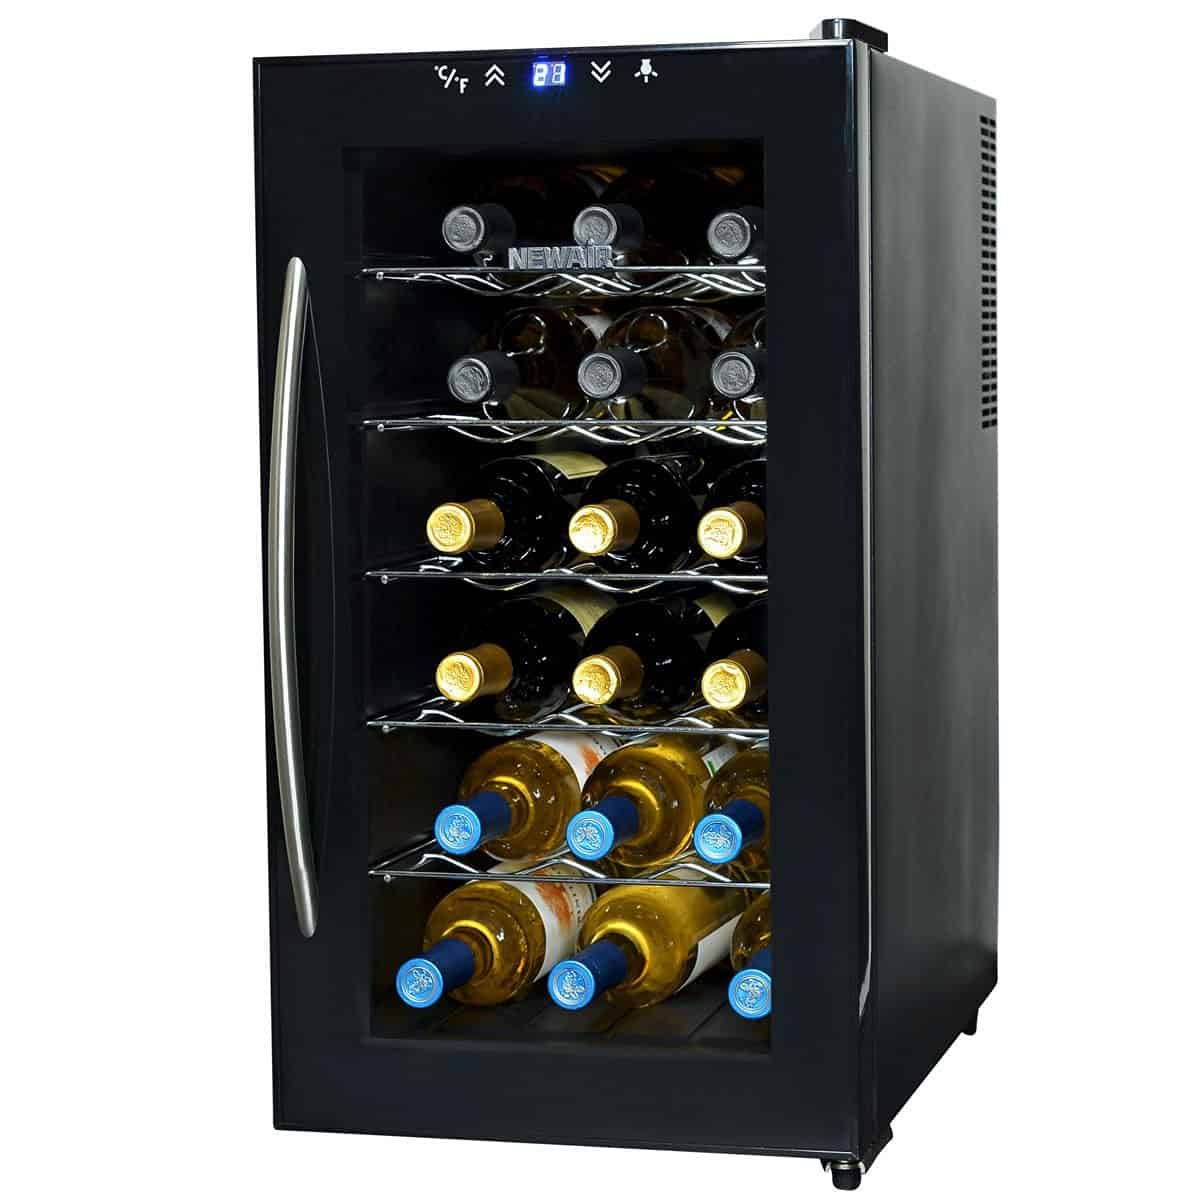 Best Wine Refrigerator: Coolers Reviews & Consumer Reports 3